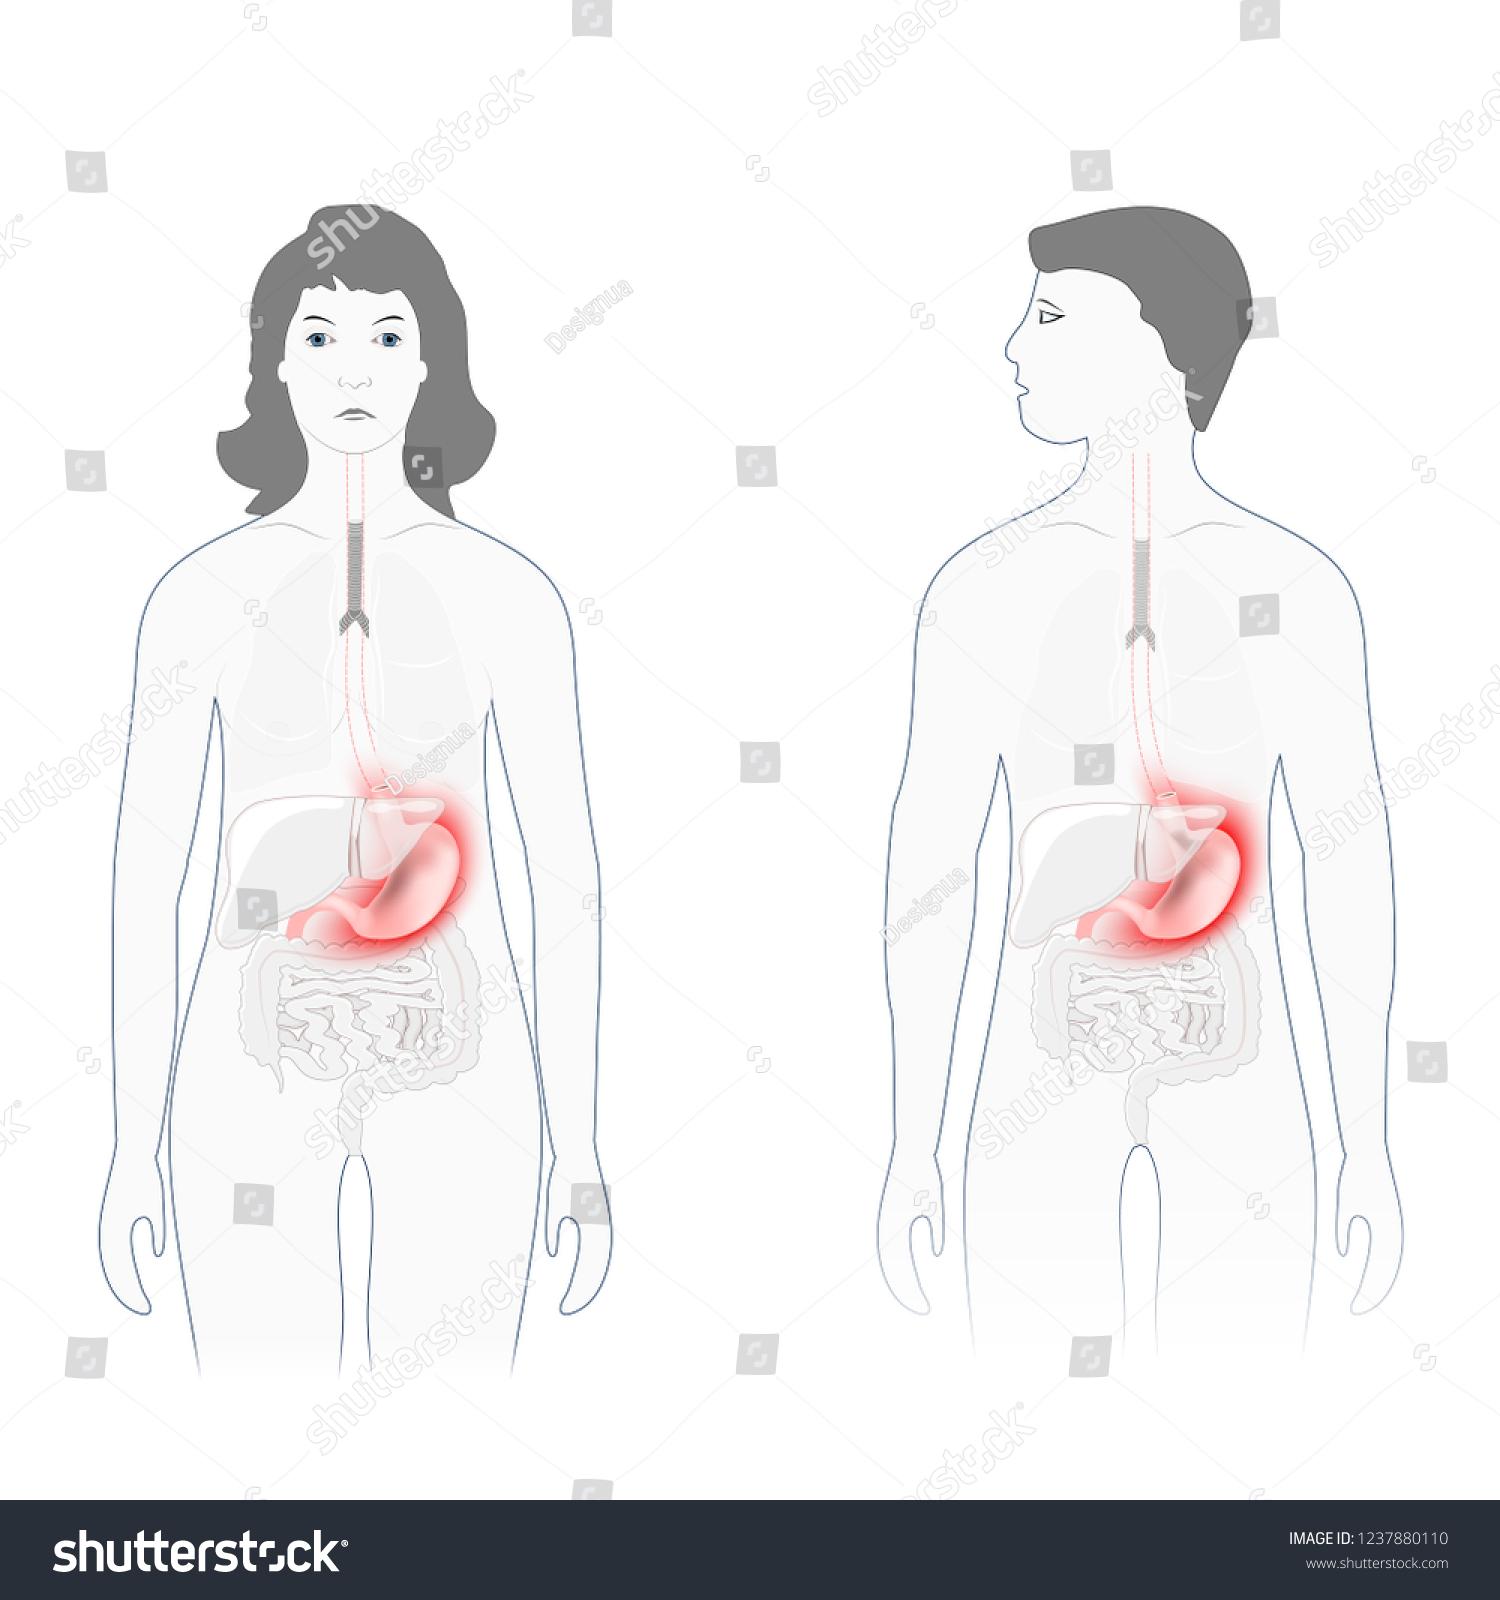 hight resolution of stomach pain male female silhouette highlighted stock vector pain scale diagram female body diagram for pain